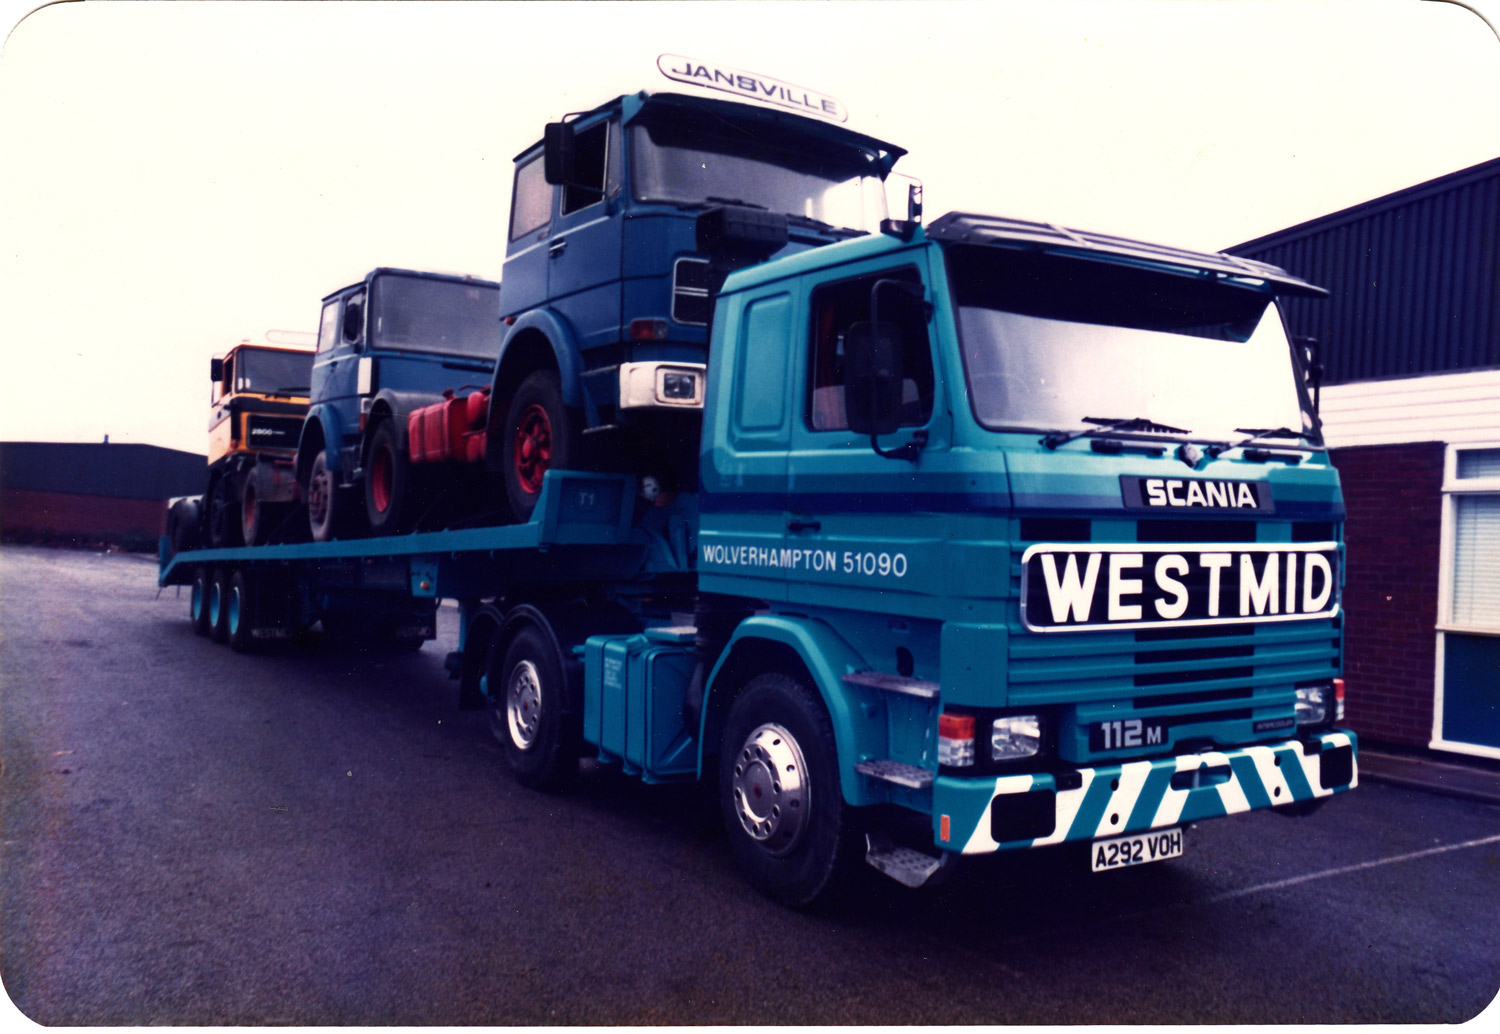 Westmid tractor unit with state-of-the-art sliding deck recovery trailer (well it was state-of-the-art at the time). Note it is carrying three tractor units as the trailer had a technical dispensation on overall length, discovered by Chris Kelly, and exploited to the full to benefit the company, collecting multiple trucks bought at auction etc, especially from Scotland. The trailer was fitted with an incredibly powerful diesel driven remote control 'donkey' winch which was fitted underfloor between the landing legs. This was designed by Chris and John Plant (of PCM, Northants), an incredibly talented engineer.